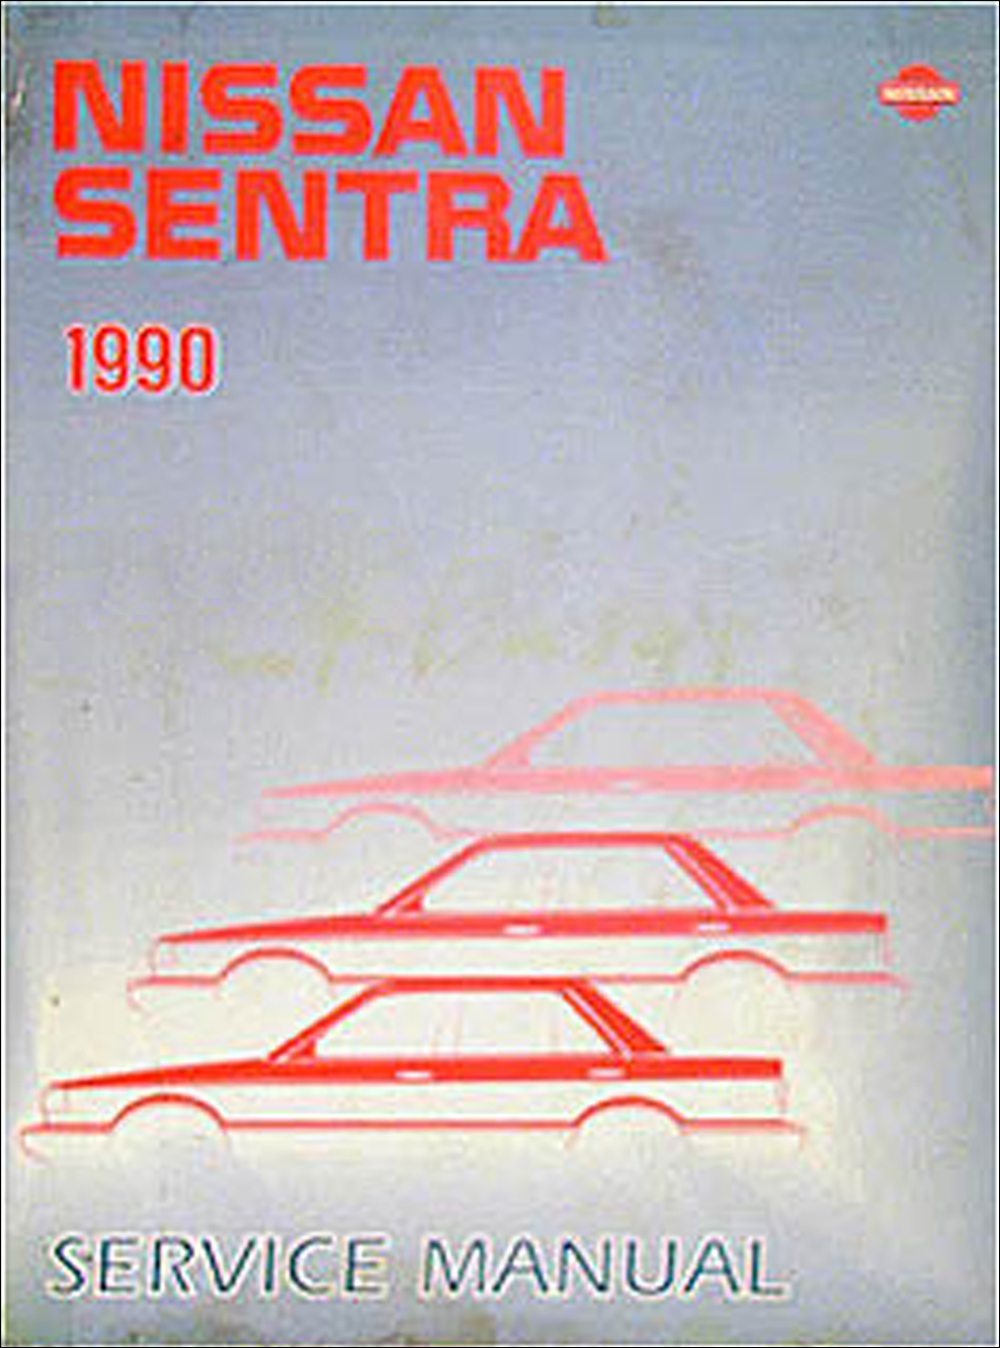 1990 Nissan Sentra Owners Manual Original Canadian In English And B12 Fuse Box Repair Shop